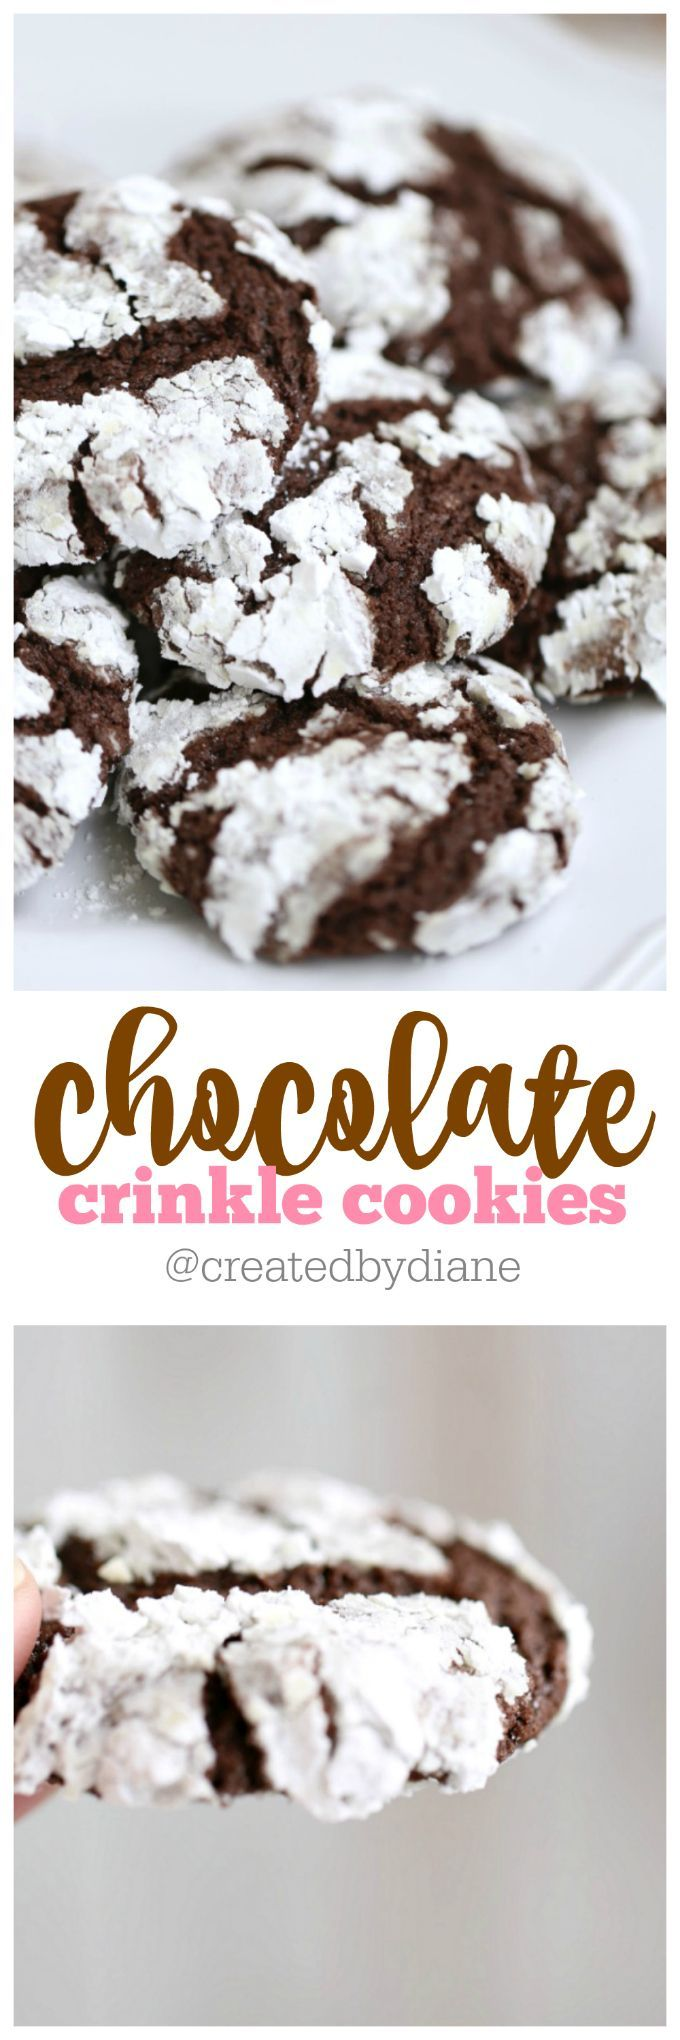 powdered sugar coated easy chocolate crinkle cookies are done quicker and don't need 2 hours in the fridge, just ten minutes a tray.